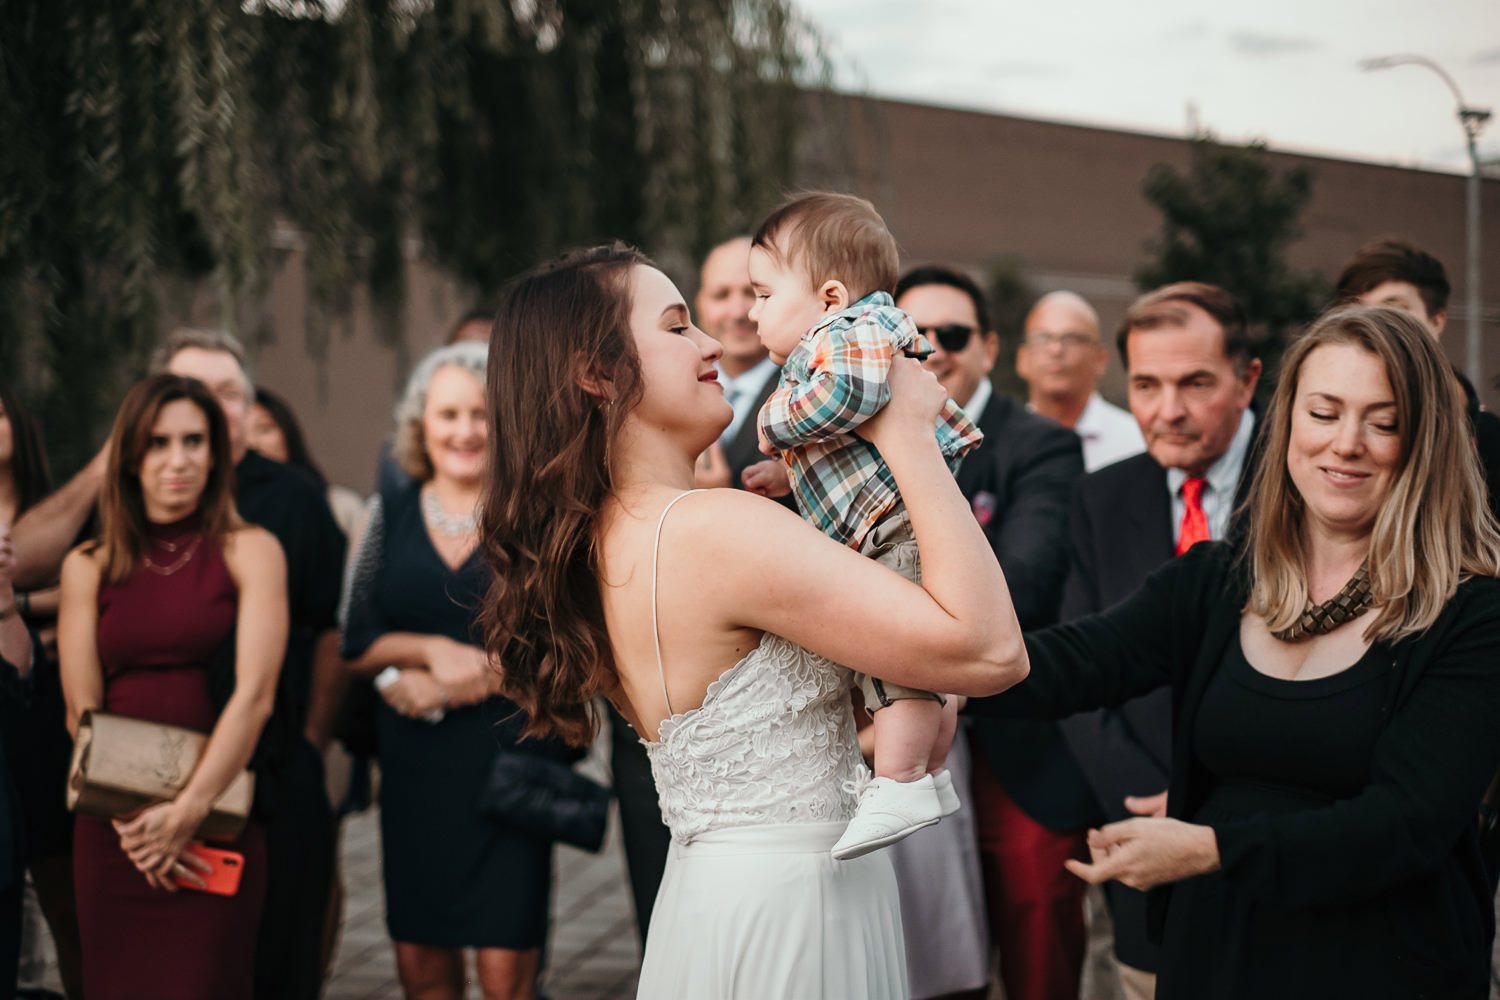 bride picks up baby during ceremony